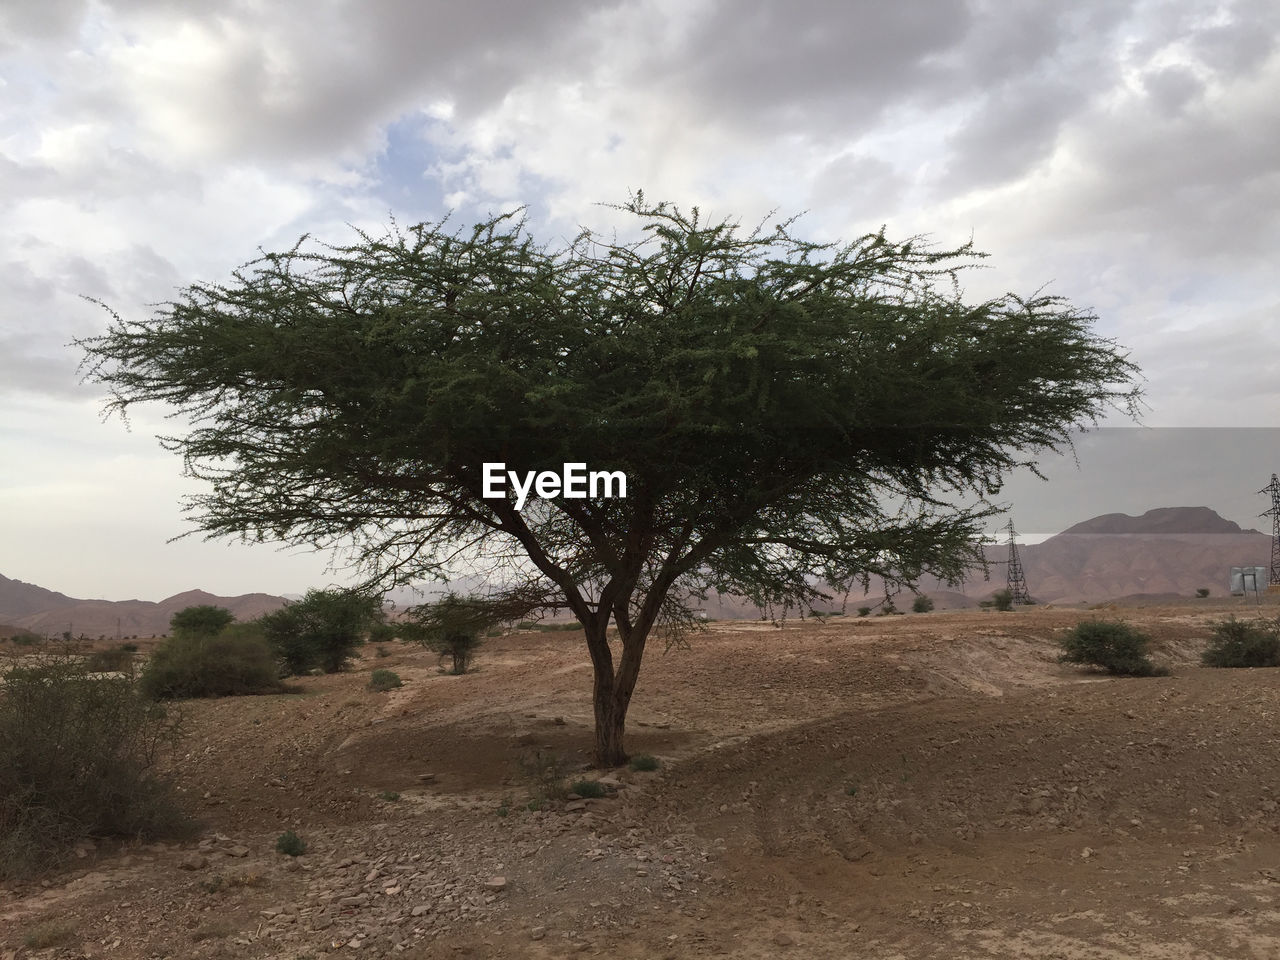 plant, sky, tree, cloud - sky, beauty in nature, environment, landscape, land, scenics - nature, nature, growth, tranquil scene, tranquility, day, non-urban scene, field, no people, outdoors, mountain, remote, arid climate, semi-arid